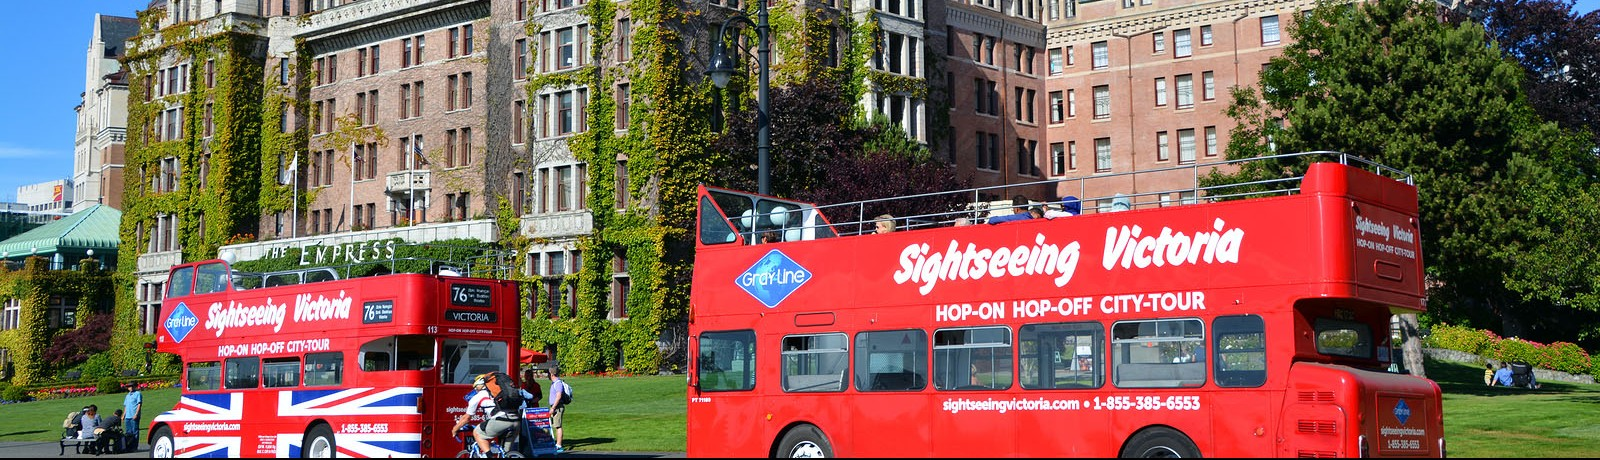 Bus tours in Victoria, BC